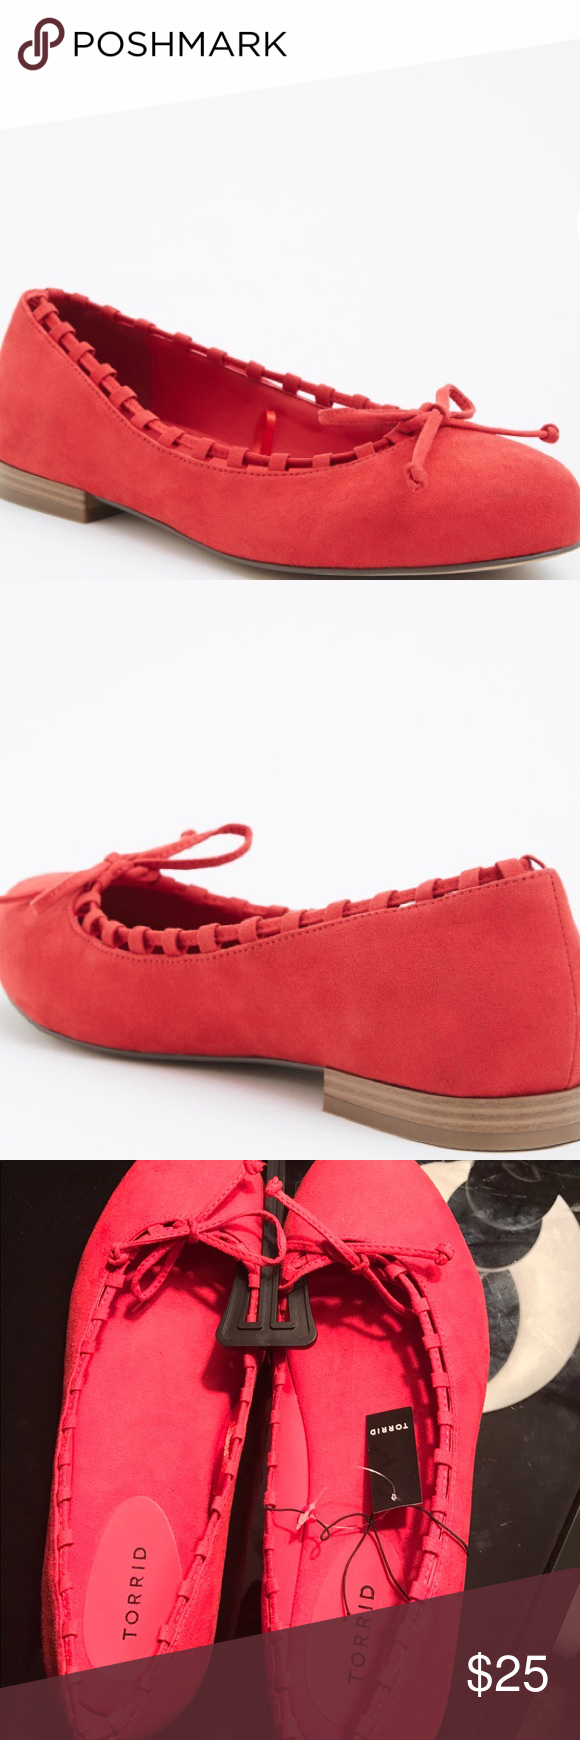 New torrid red ballet flats suede size